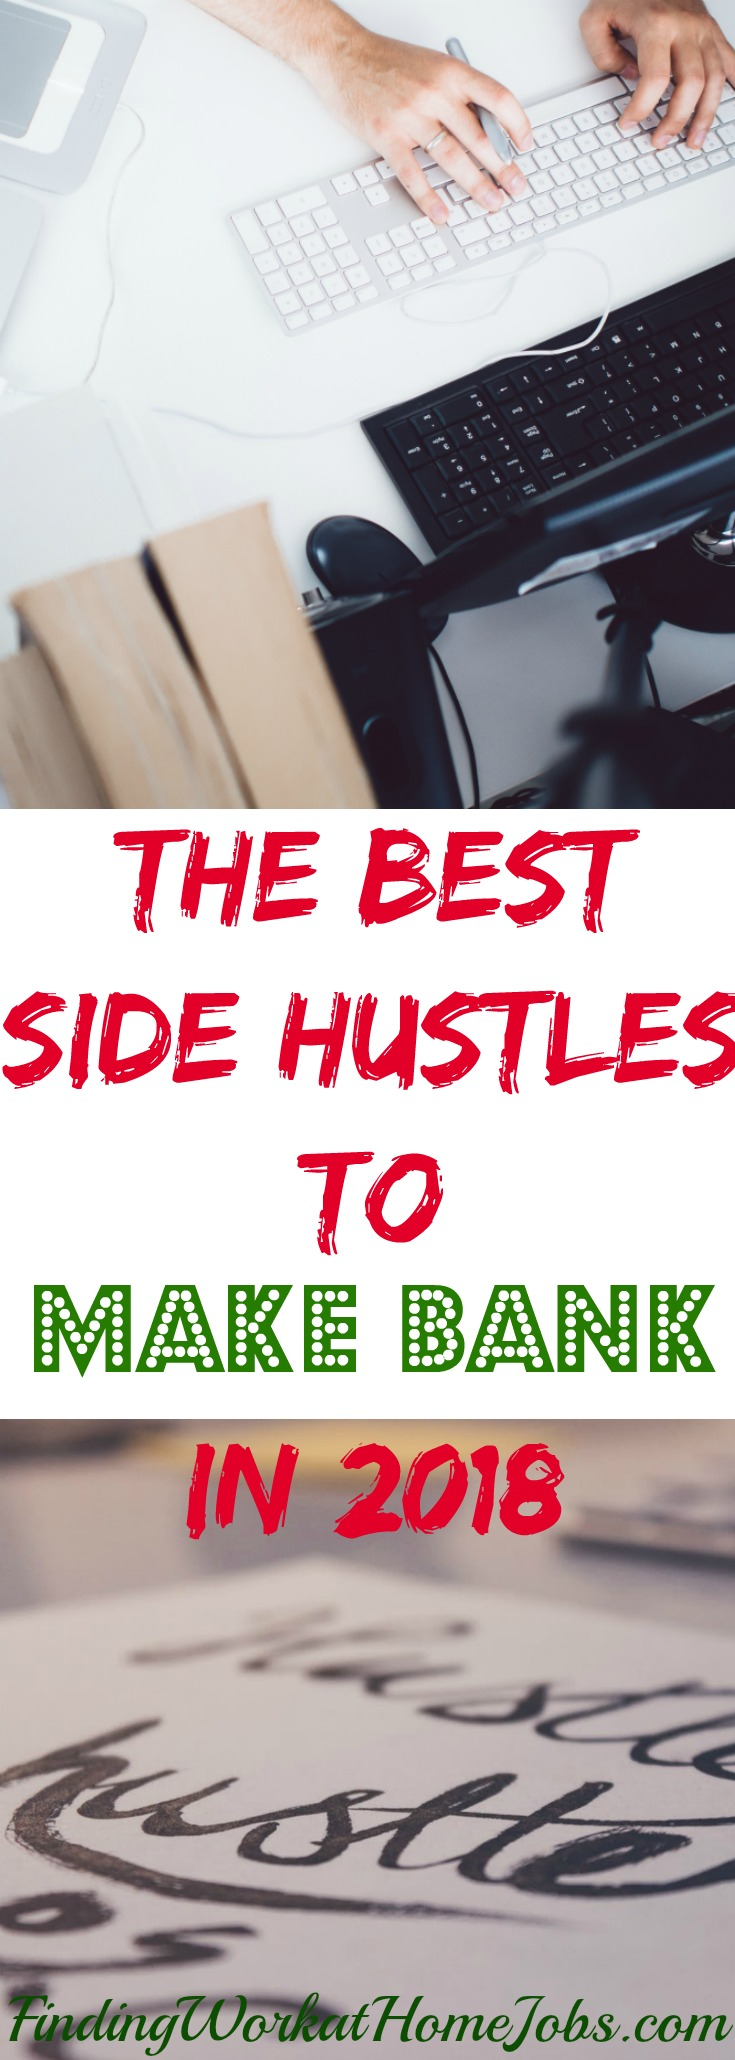 the best side hustles